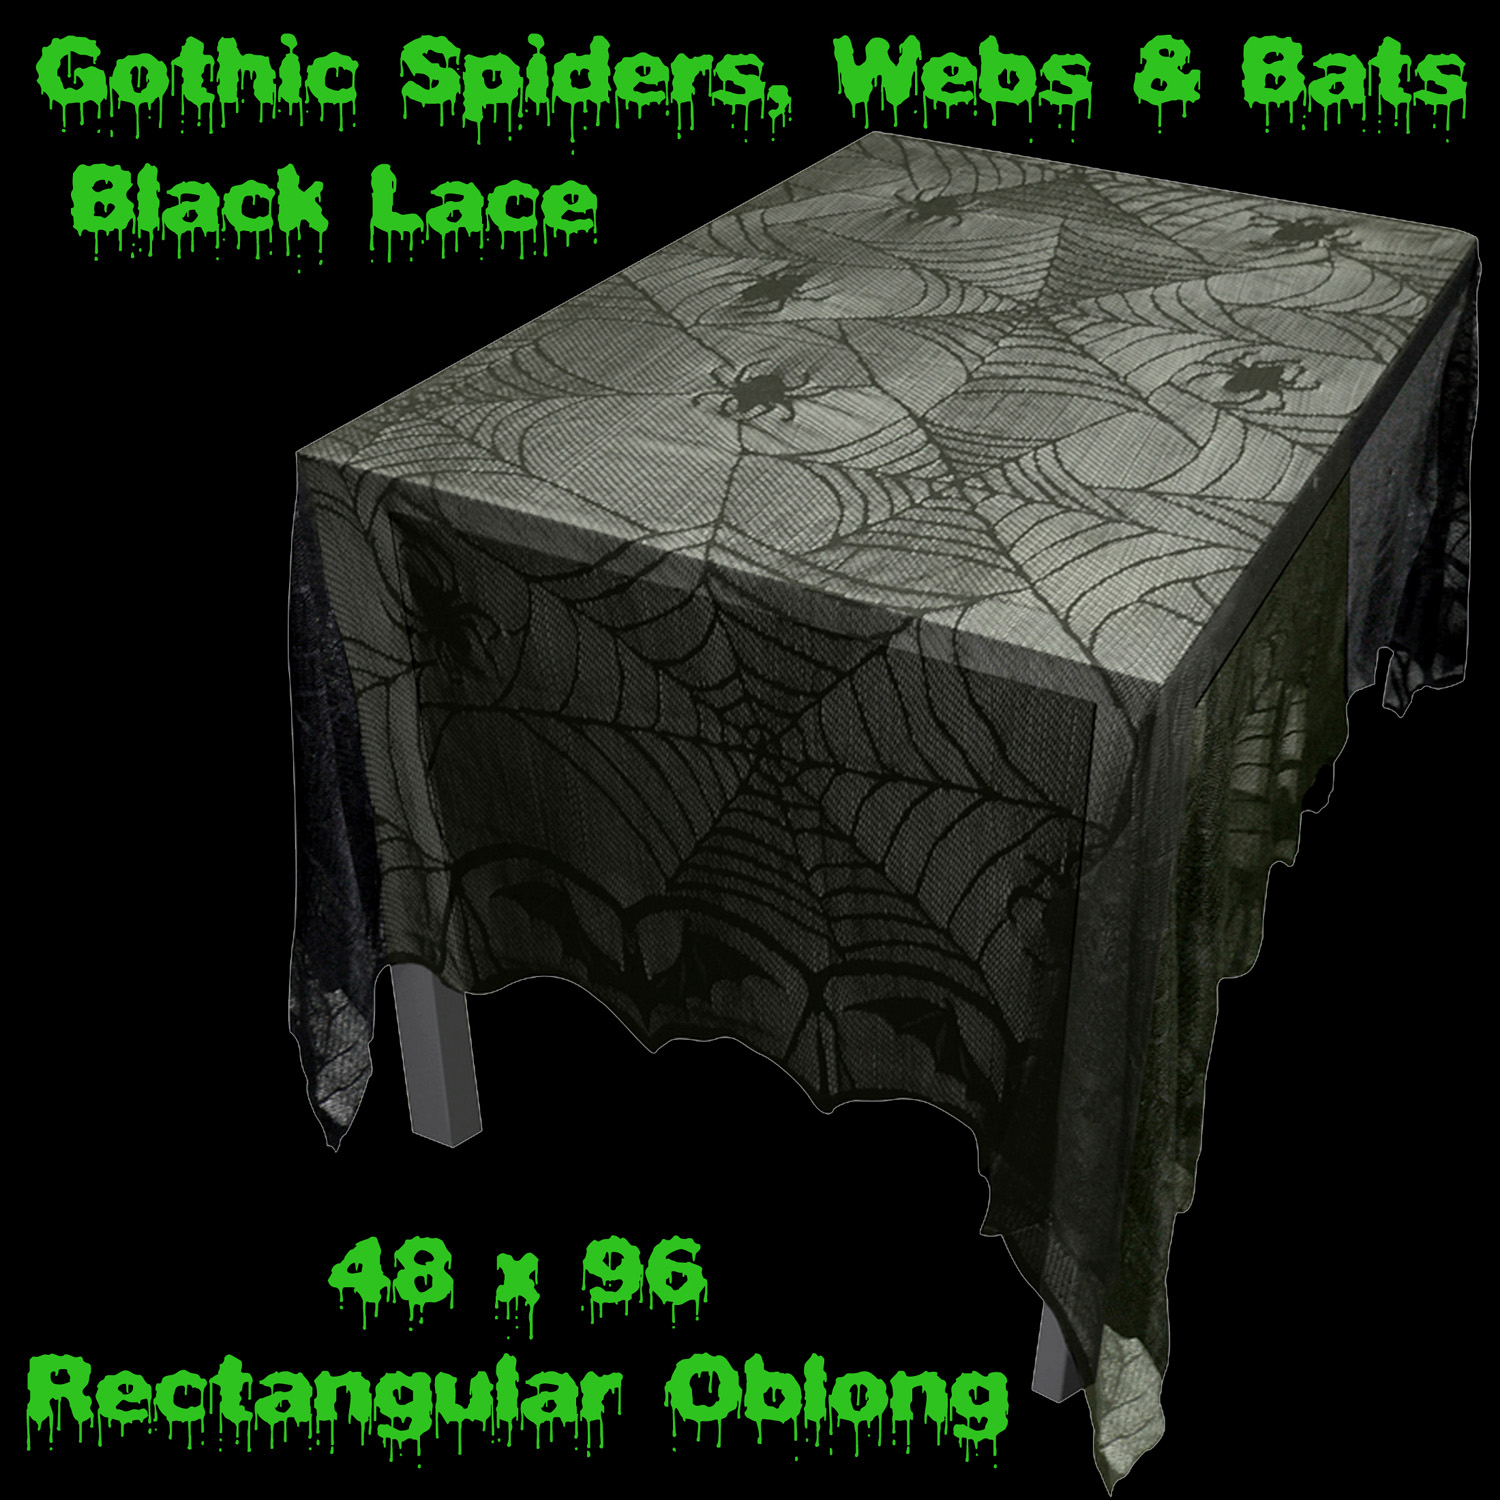 black lace bat spider lampshade topper valance swag gothic decor